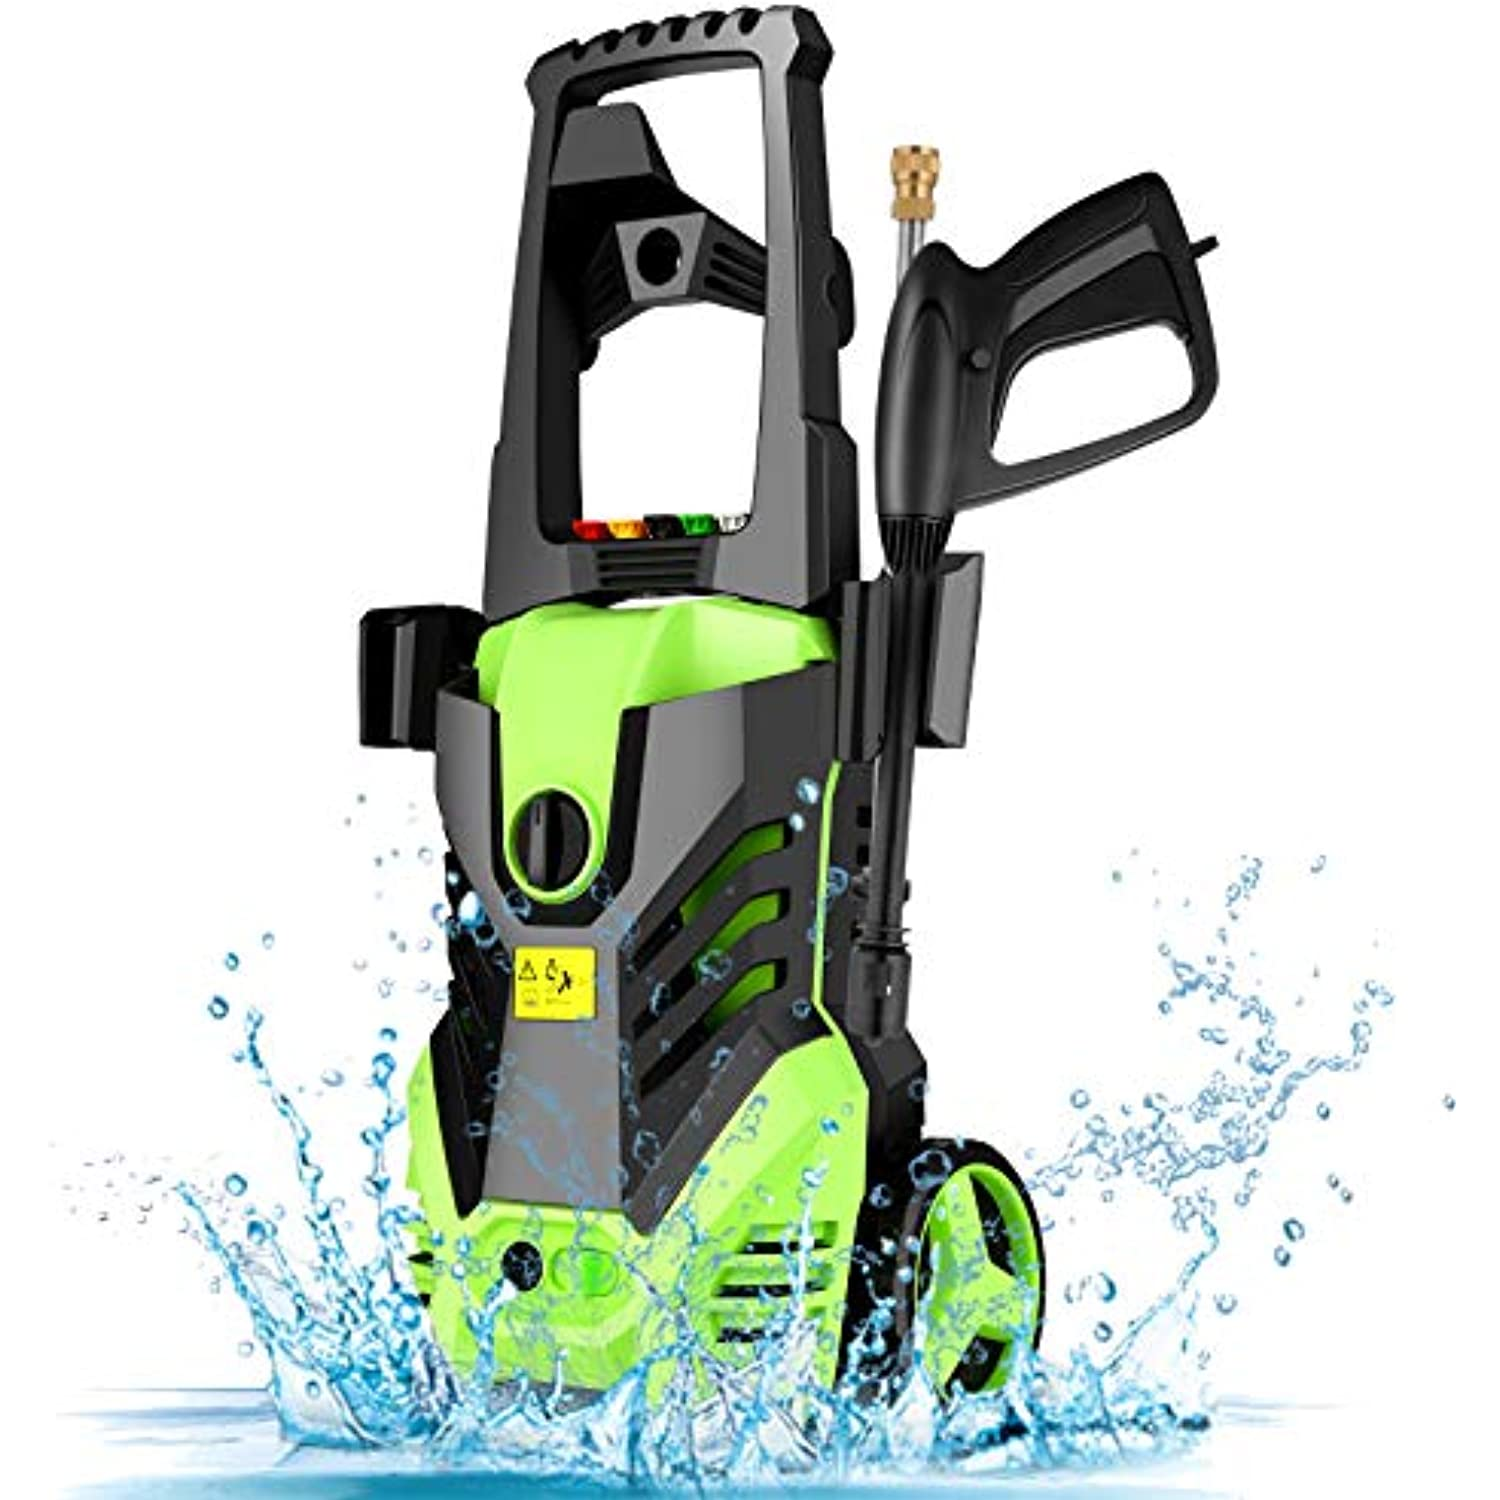 Homdox Electric High Pressure Washer, permissible pressure 2950PSI 1.7GPM Power Pressure Washer Machine 1800W with 5 Quick-Connect Spray Tips, Detergent Tank Perfect for Car, Home, Garden Cleaning